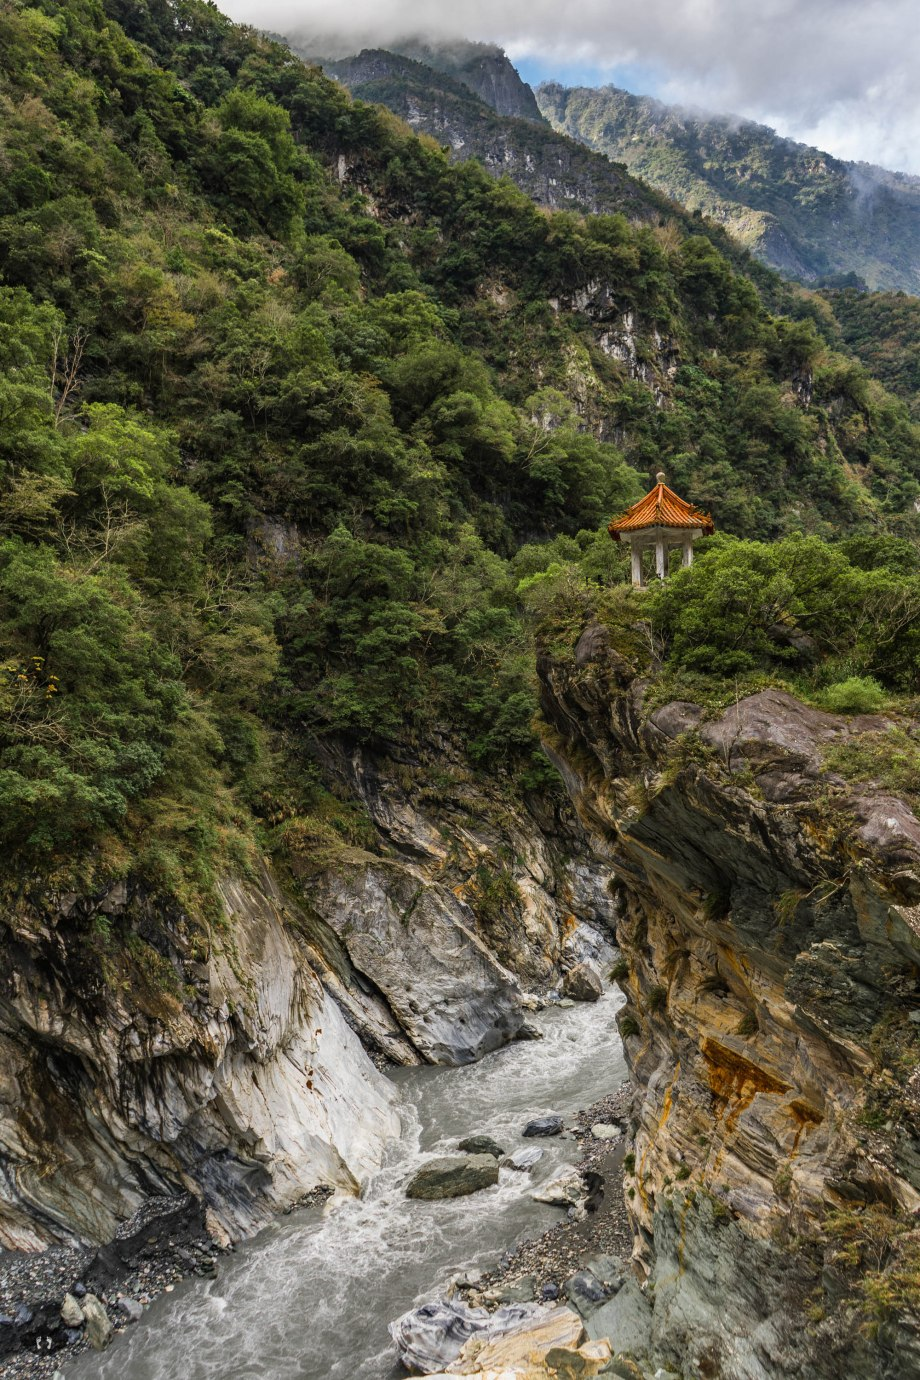 Lanting, Taroko National Park